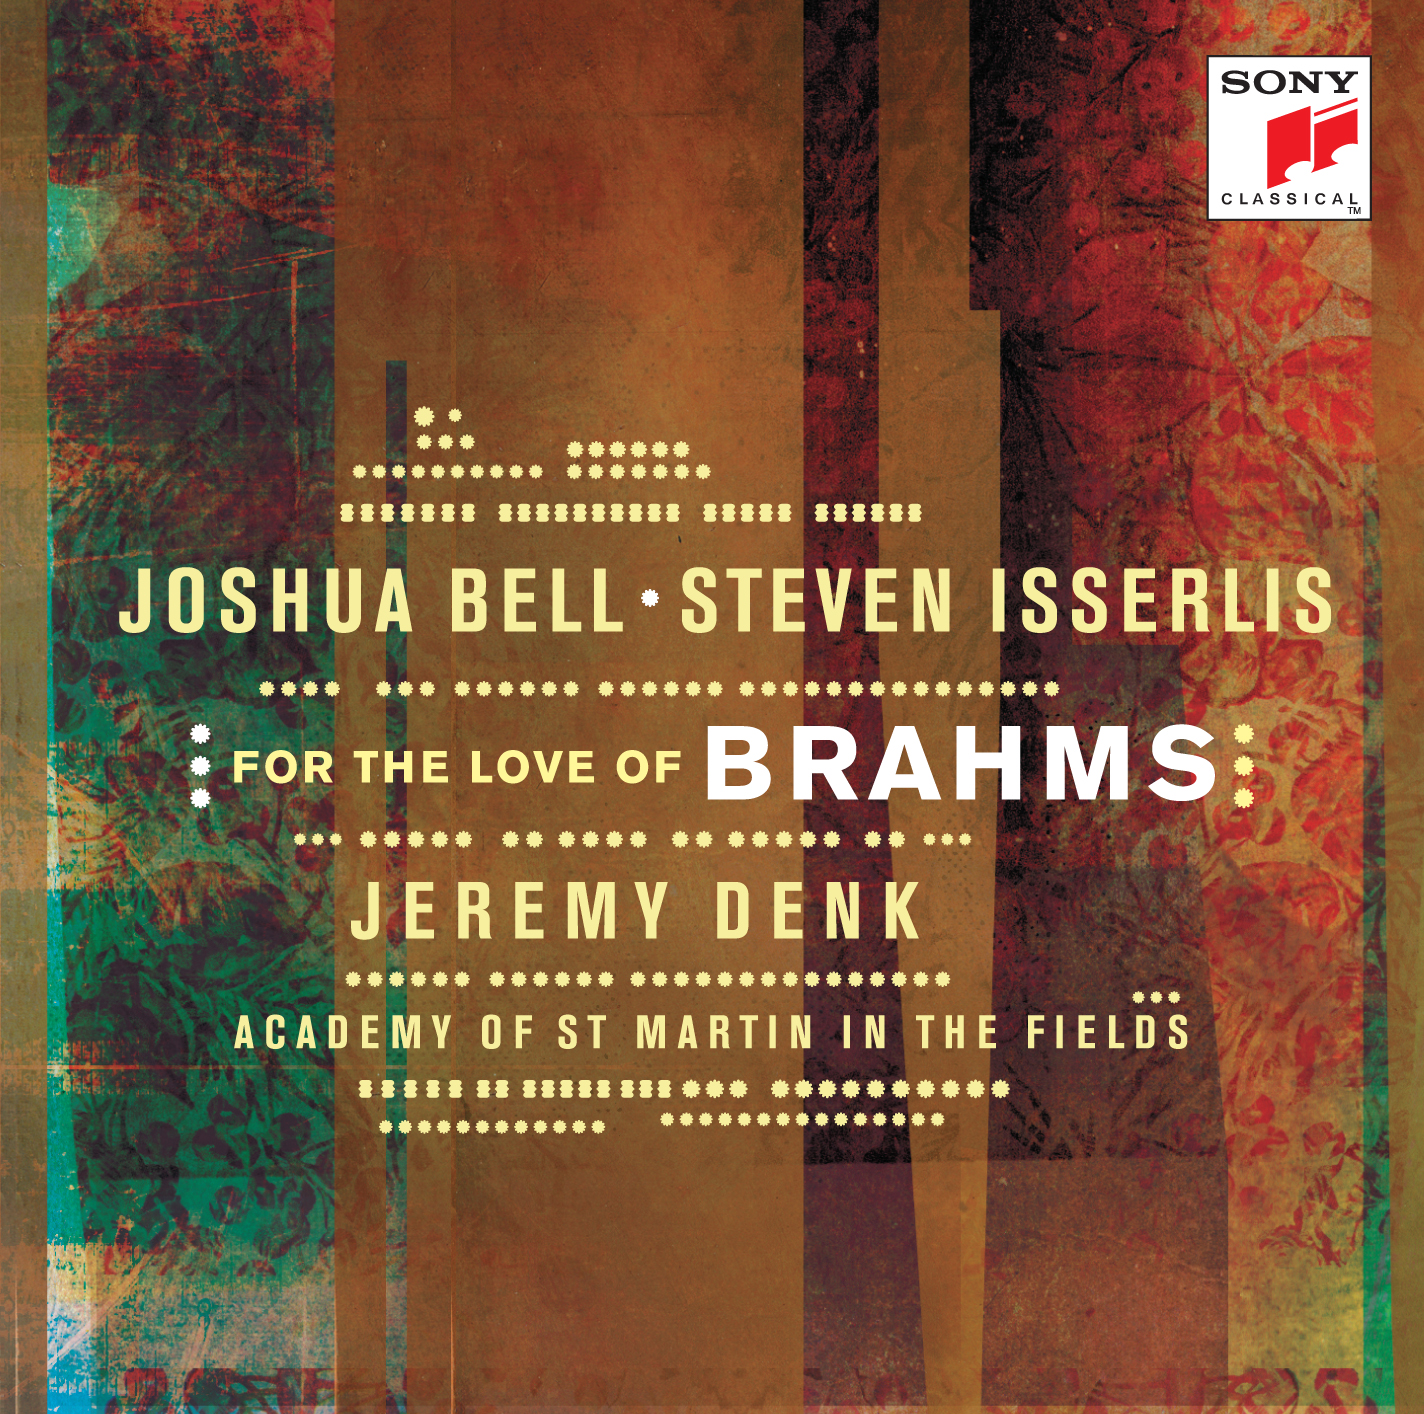 MUSIC ABOUT LOVE AND FRIENDSHIP INSPIRES JOSHUA BELL AND STEVEN ISSERLIS ON NEW ALBUM FOR THE LOVE OF BRAHMS | Out Now!